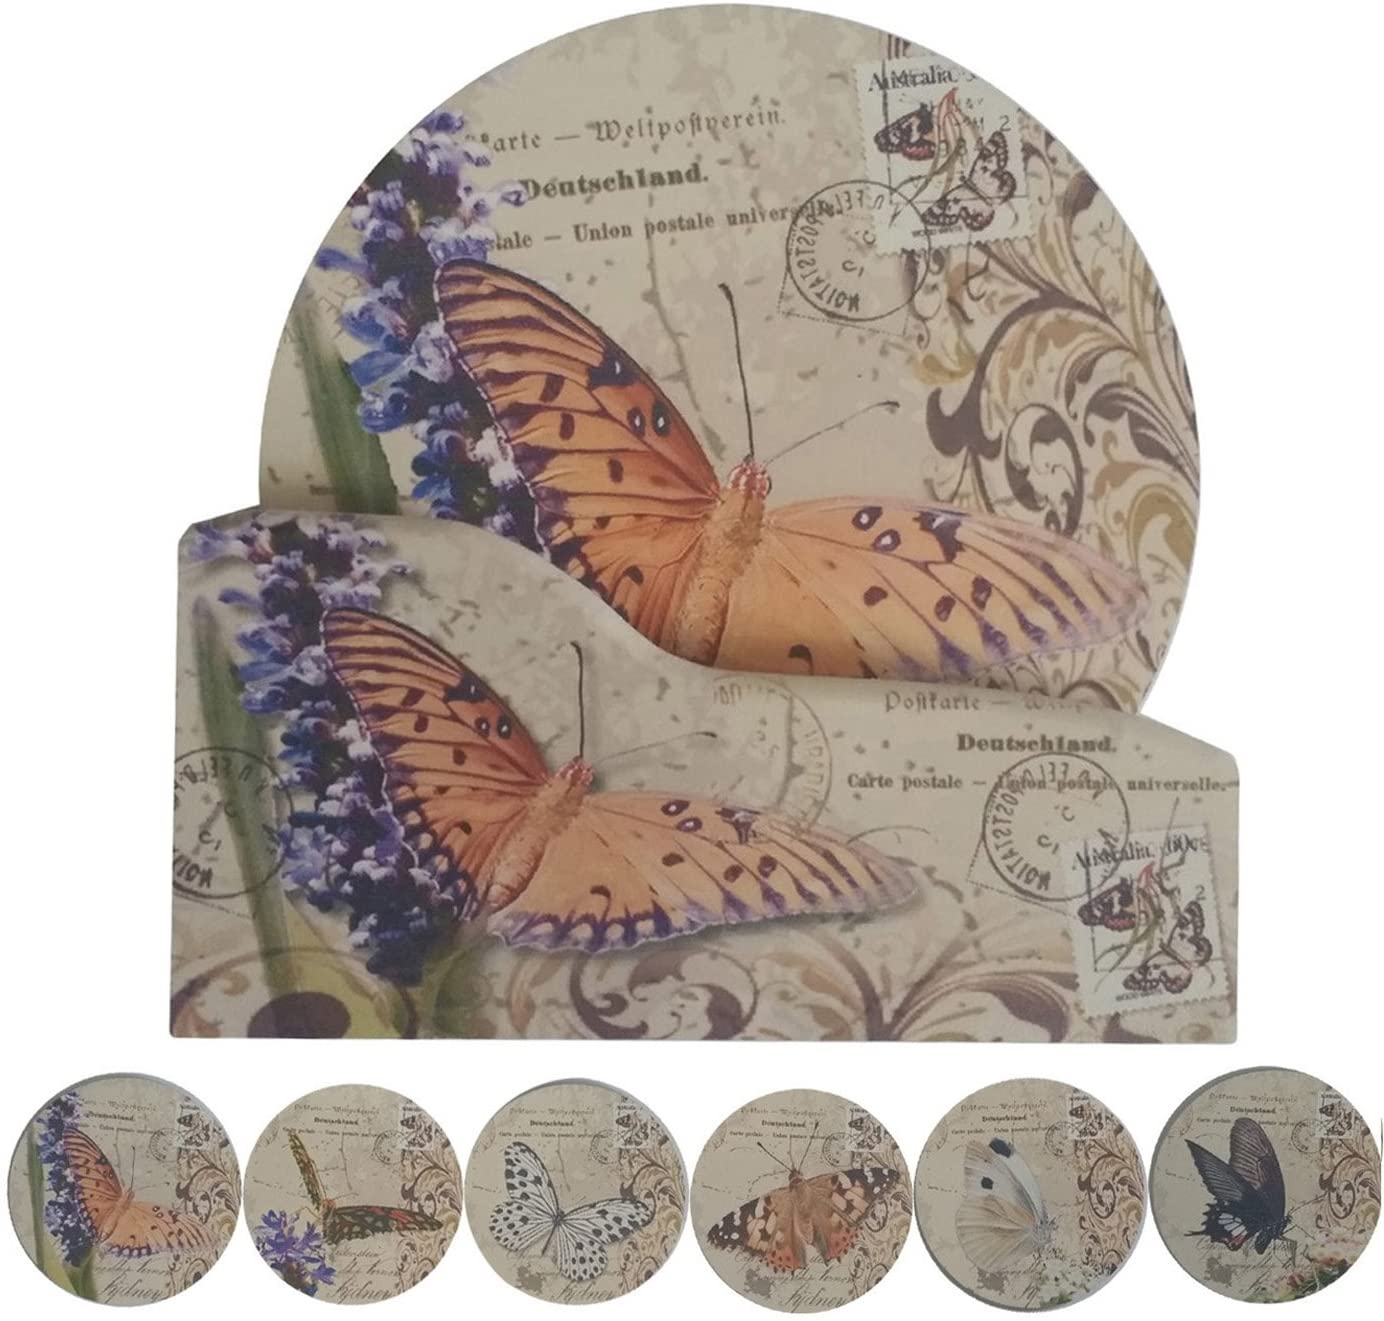 Coralpearl Cork Absorbent Coasters with Holder Decorative Round Heat Resistant Pad Mats Spoon Rest Trivet Set Table Runner Kit Large for 6 Drinks Hot Pans,Pots,Stovetop,Counter (4.3